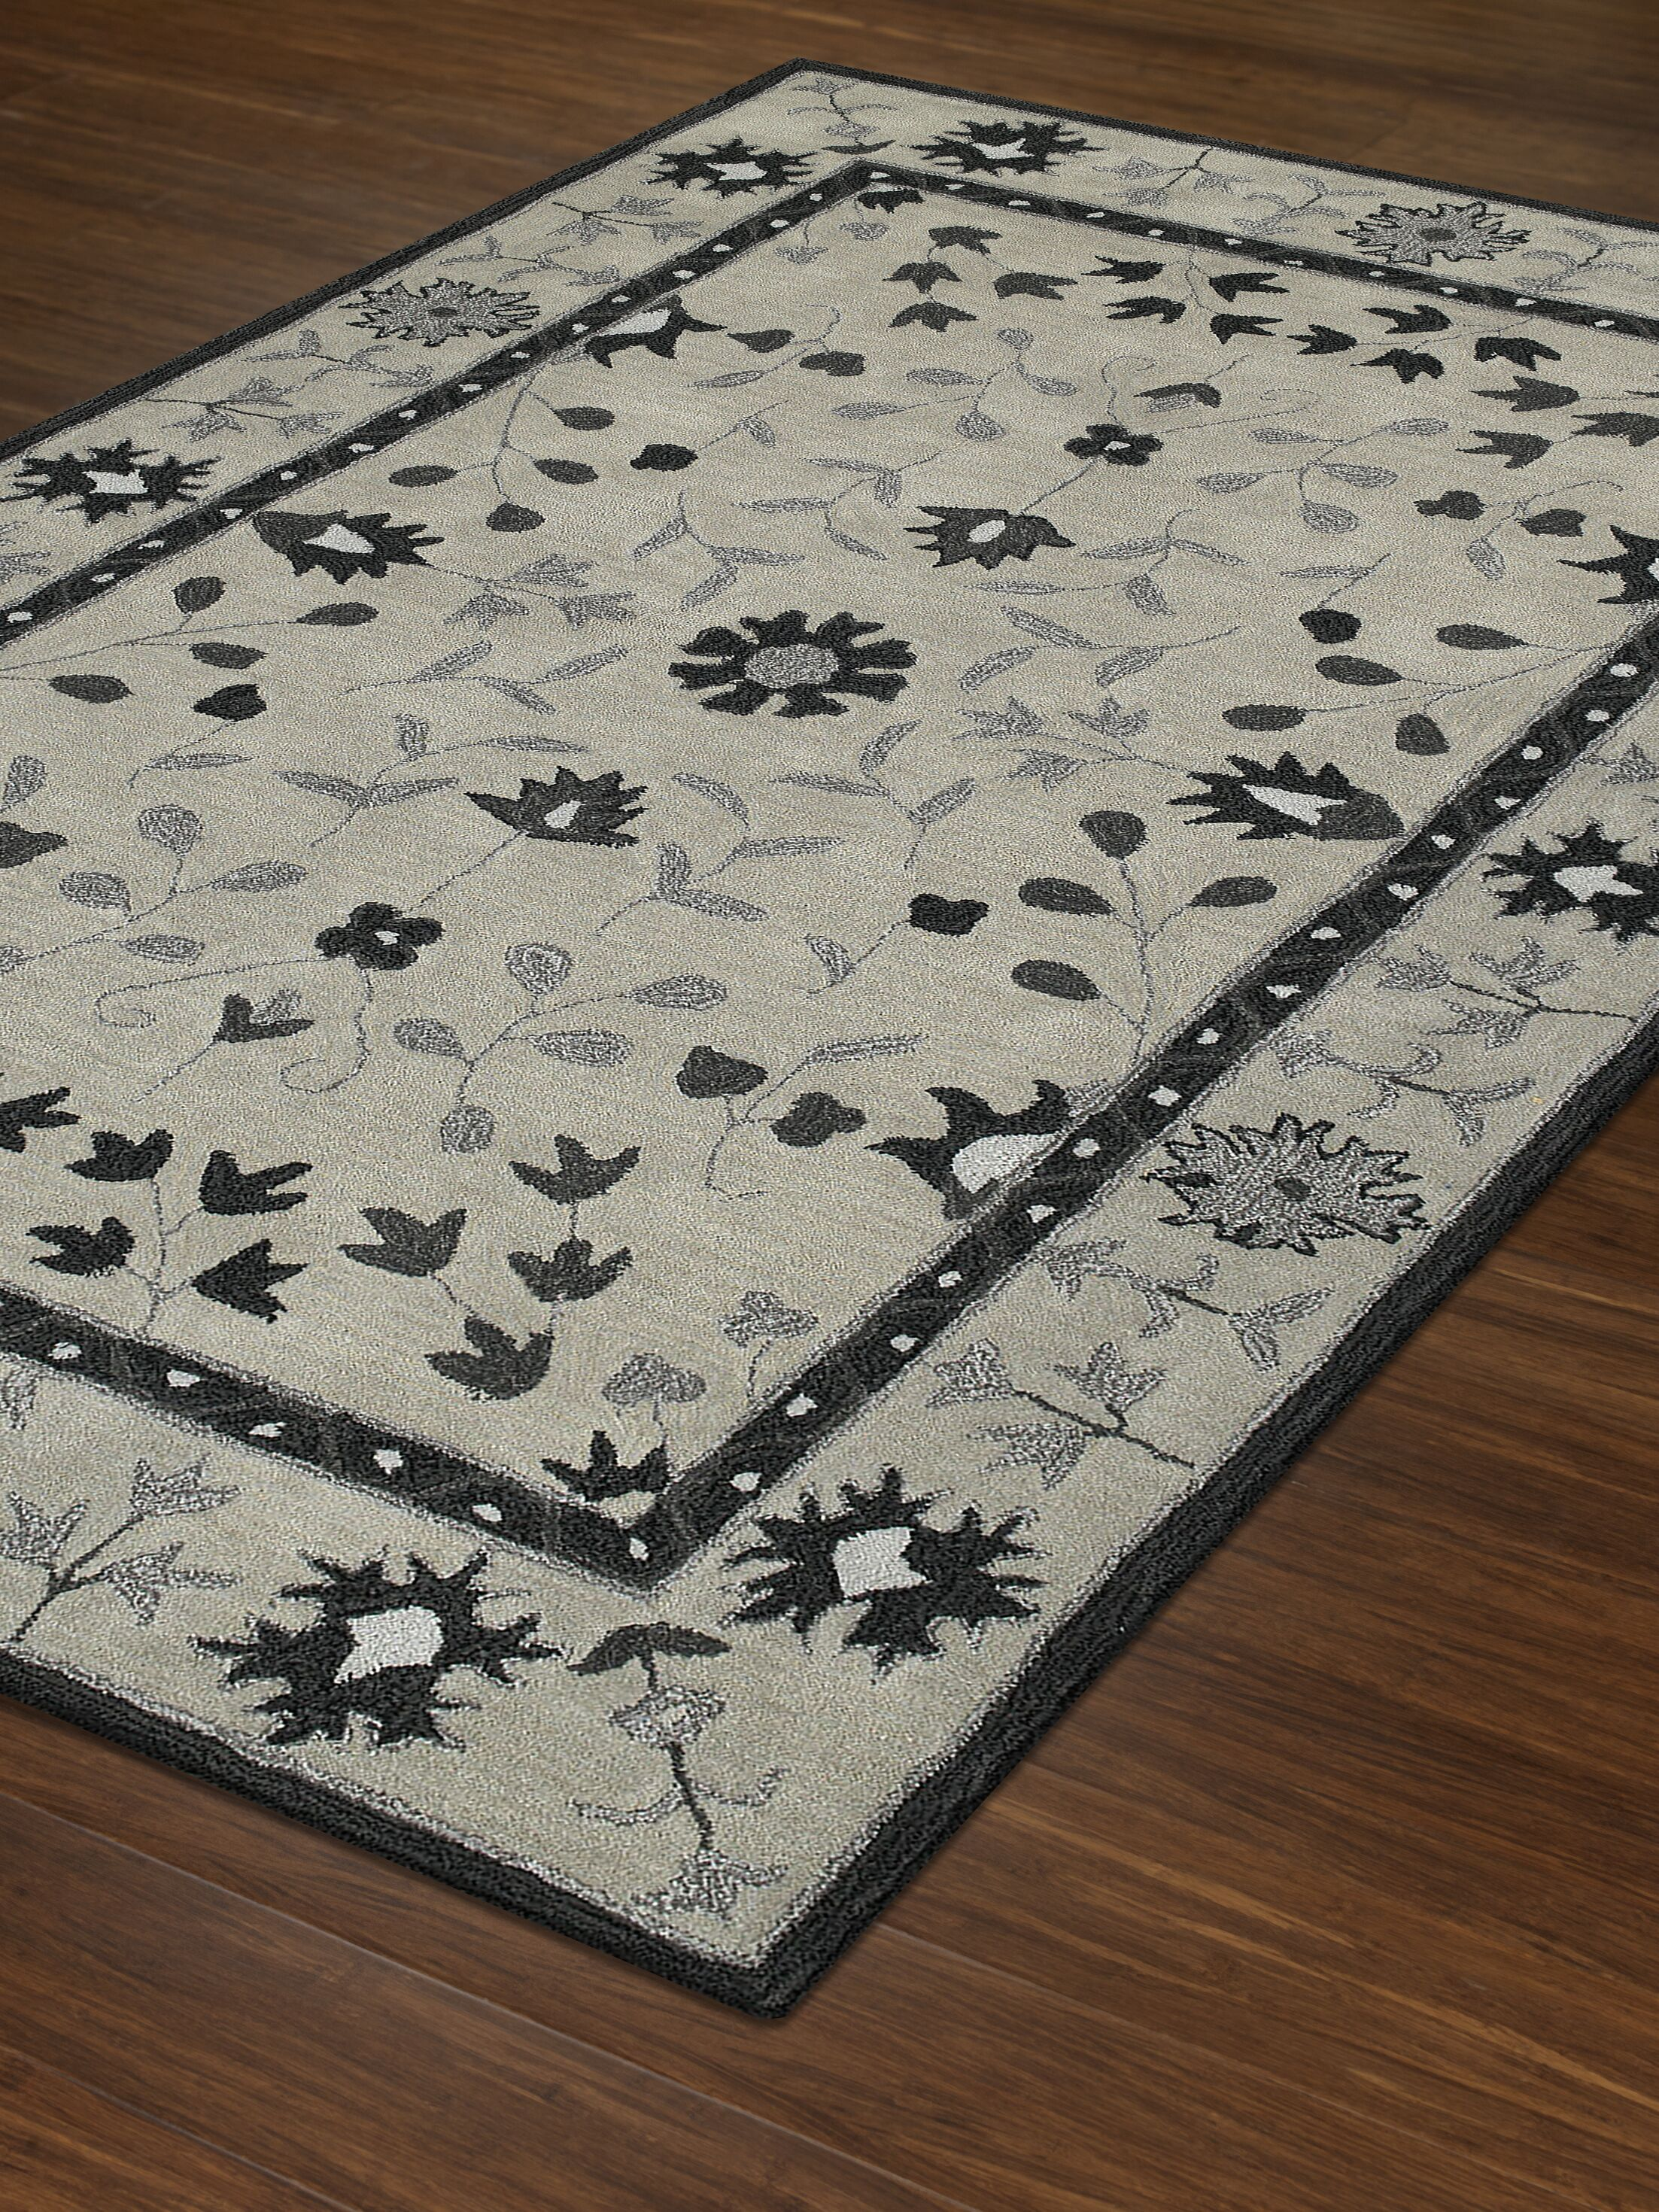 Derrek Hand-Tufted Silver Area Rug Rug Size: Rectangle 9' x 13'